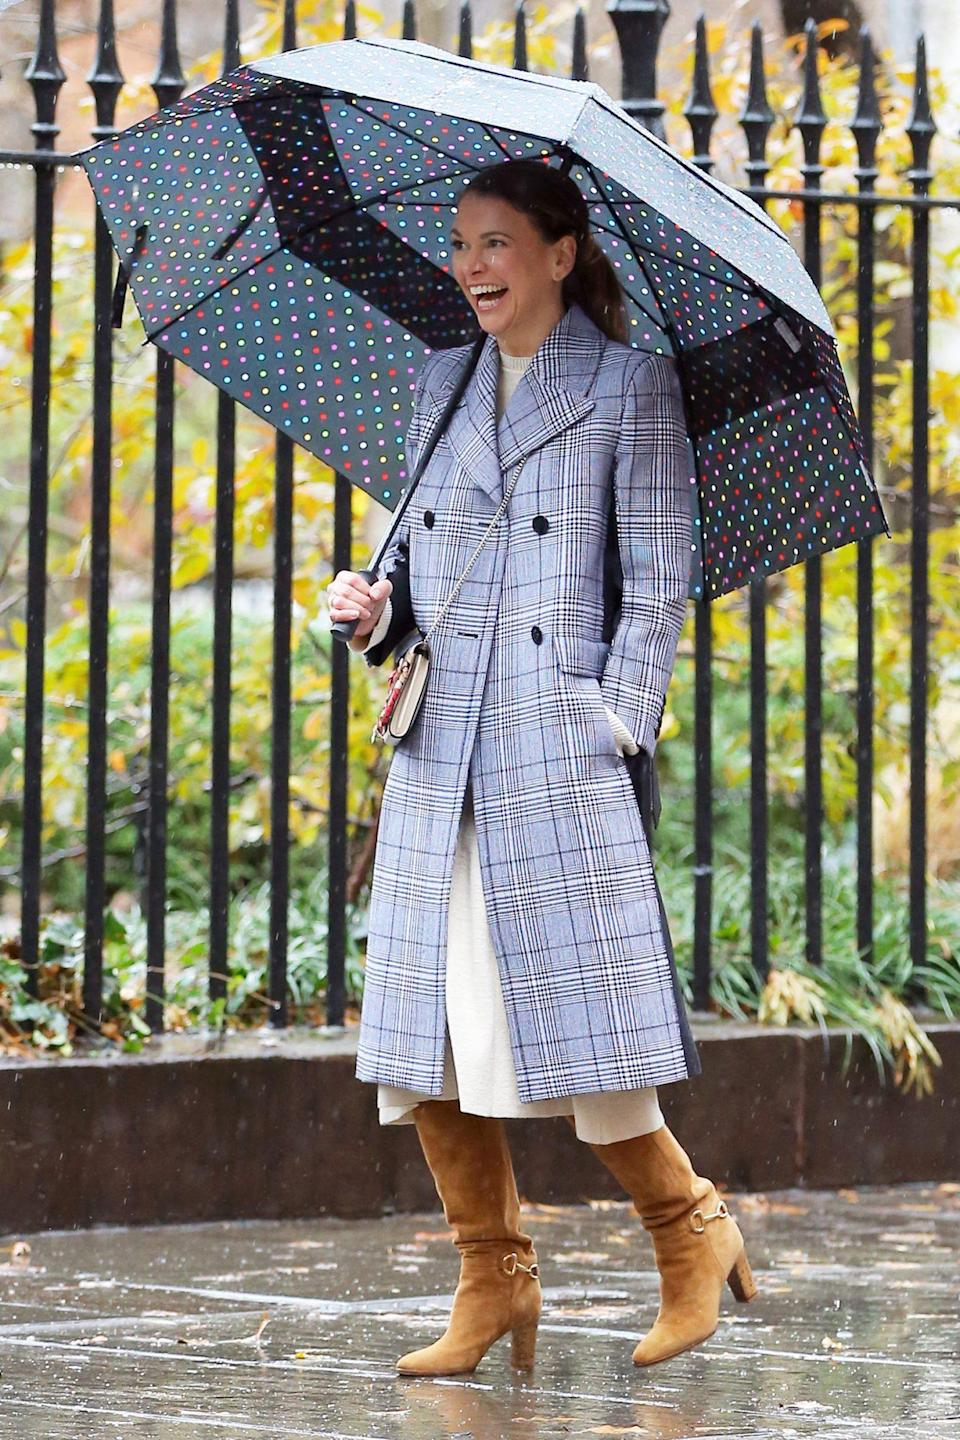 <p>Sutton Foster has sunny smiles on Monday on the New York City set of <em>Younger.</em></p>